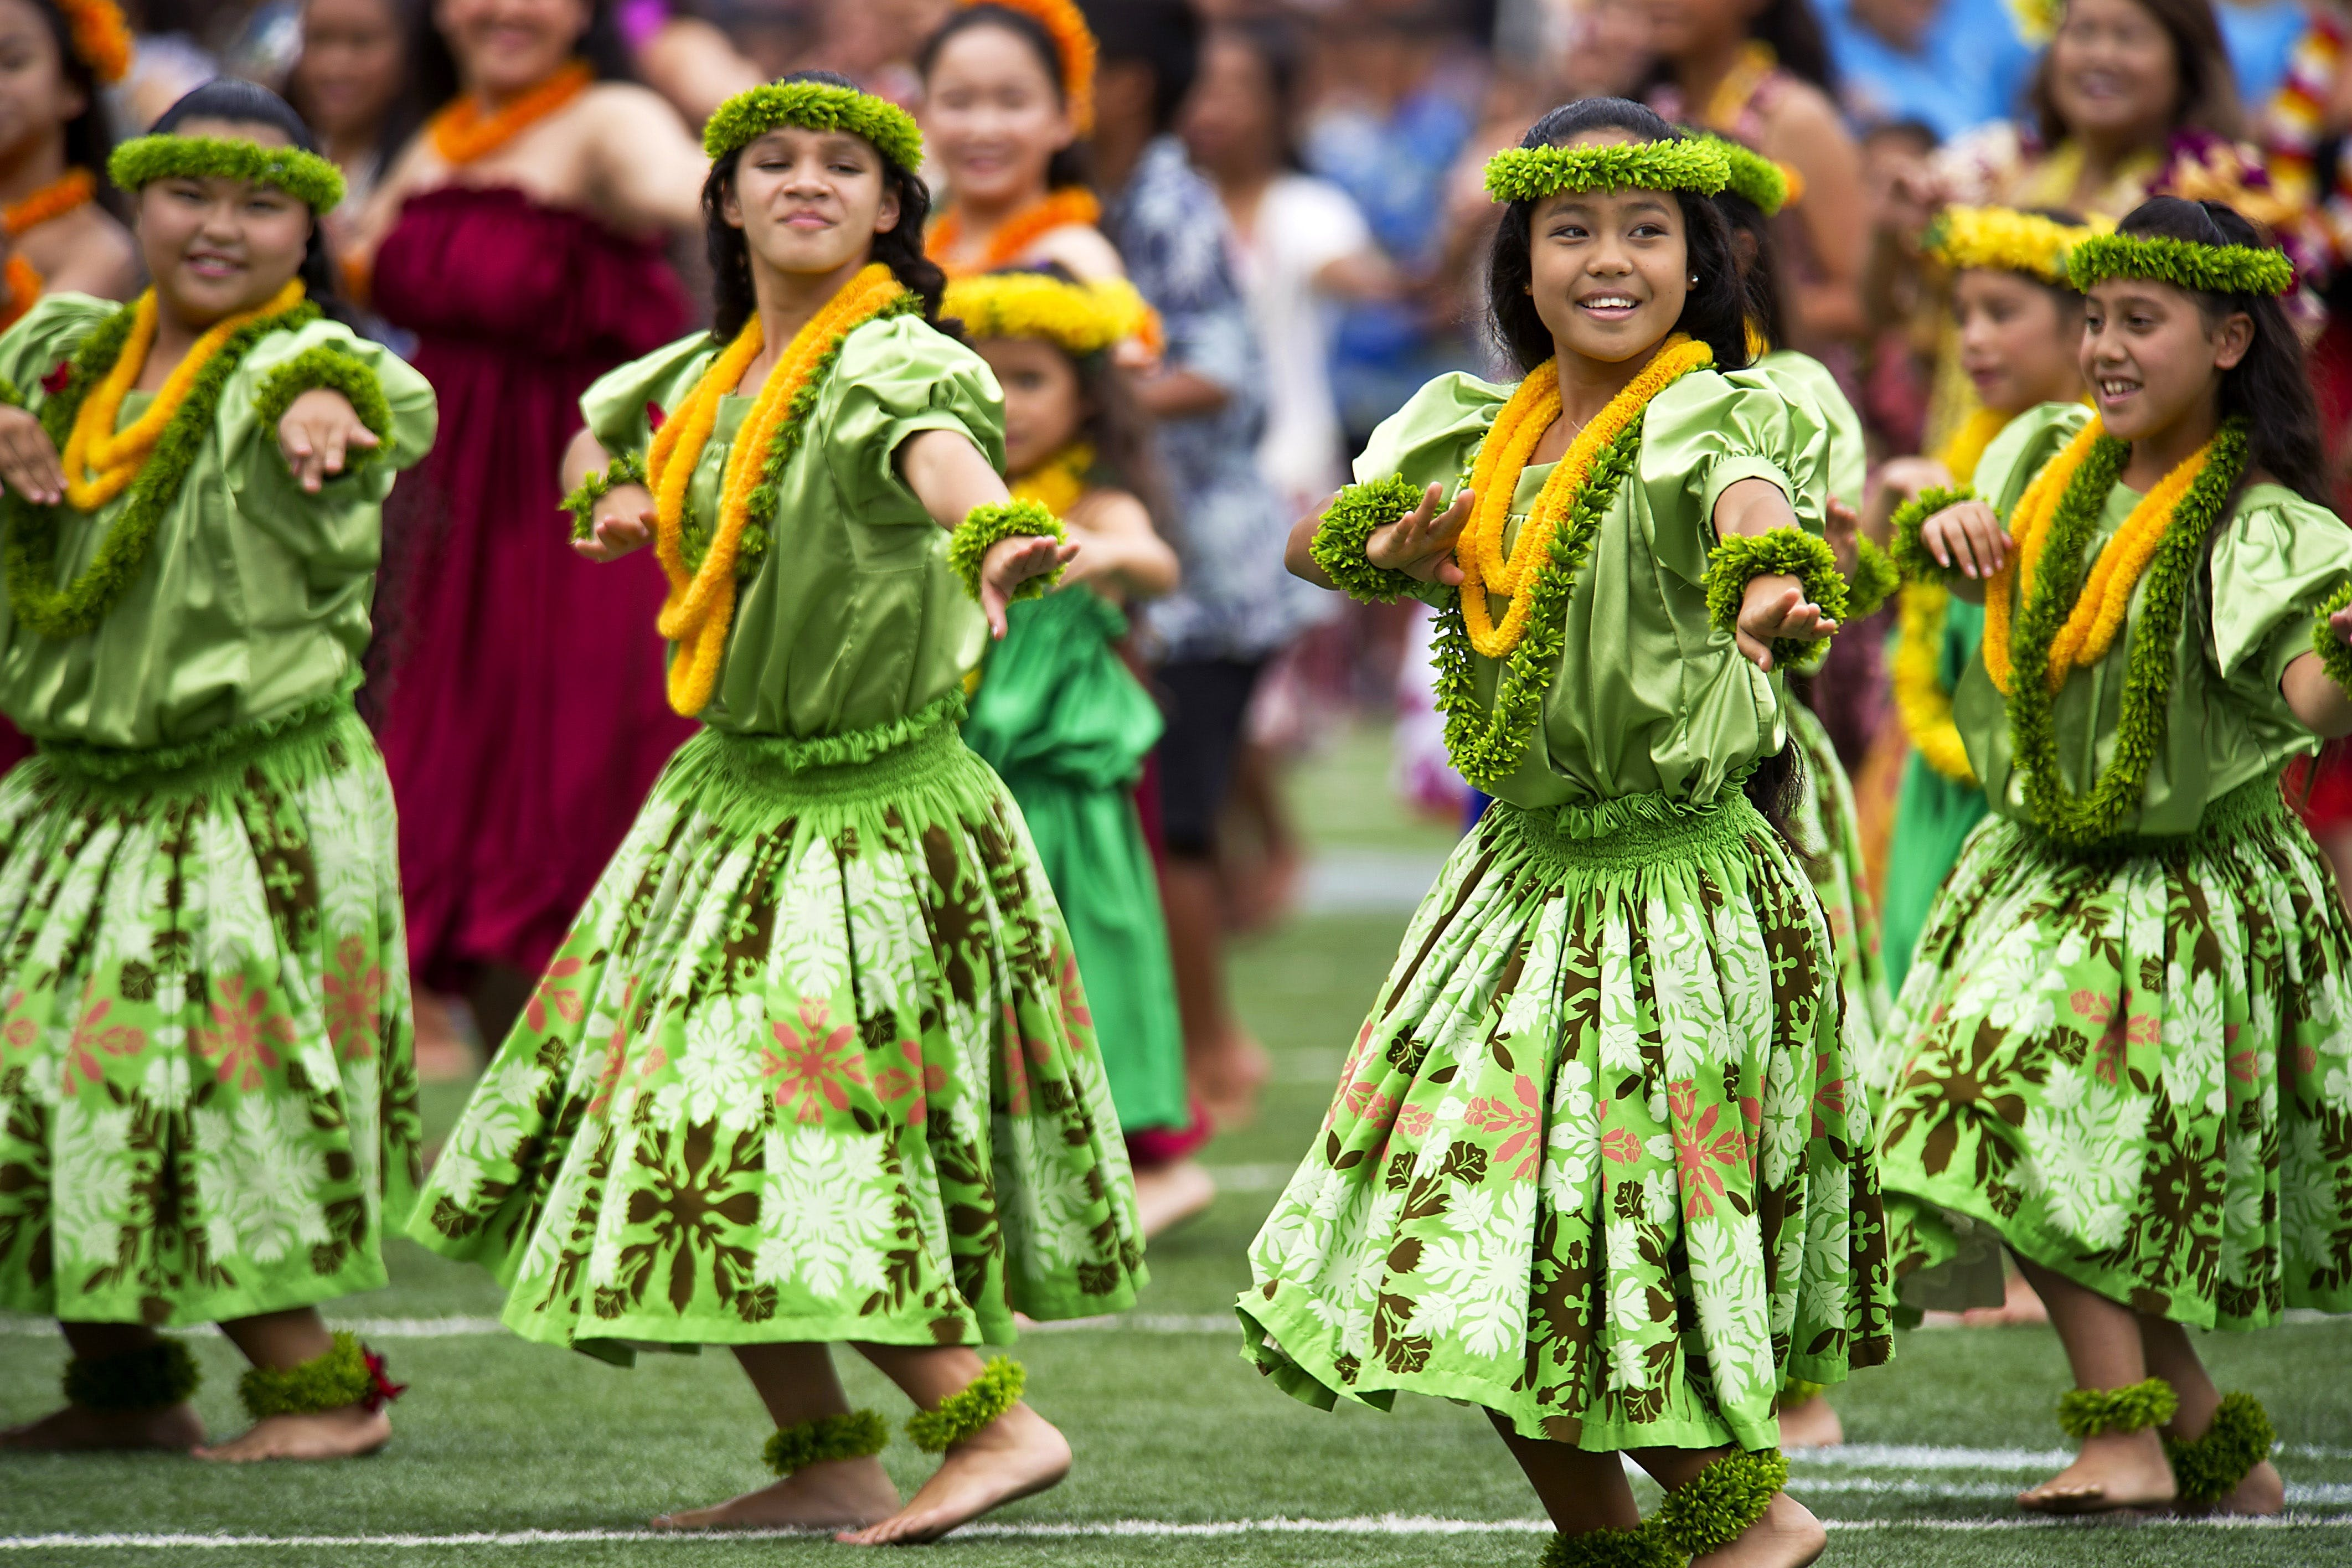 Girl's in Green Dress Dancing during Daytime With Leis